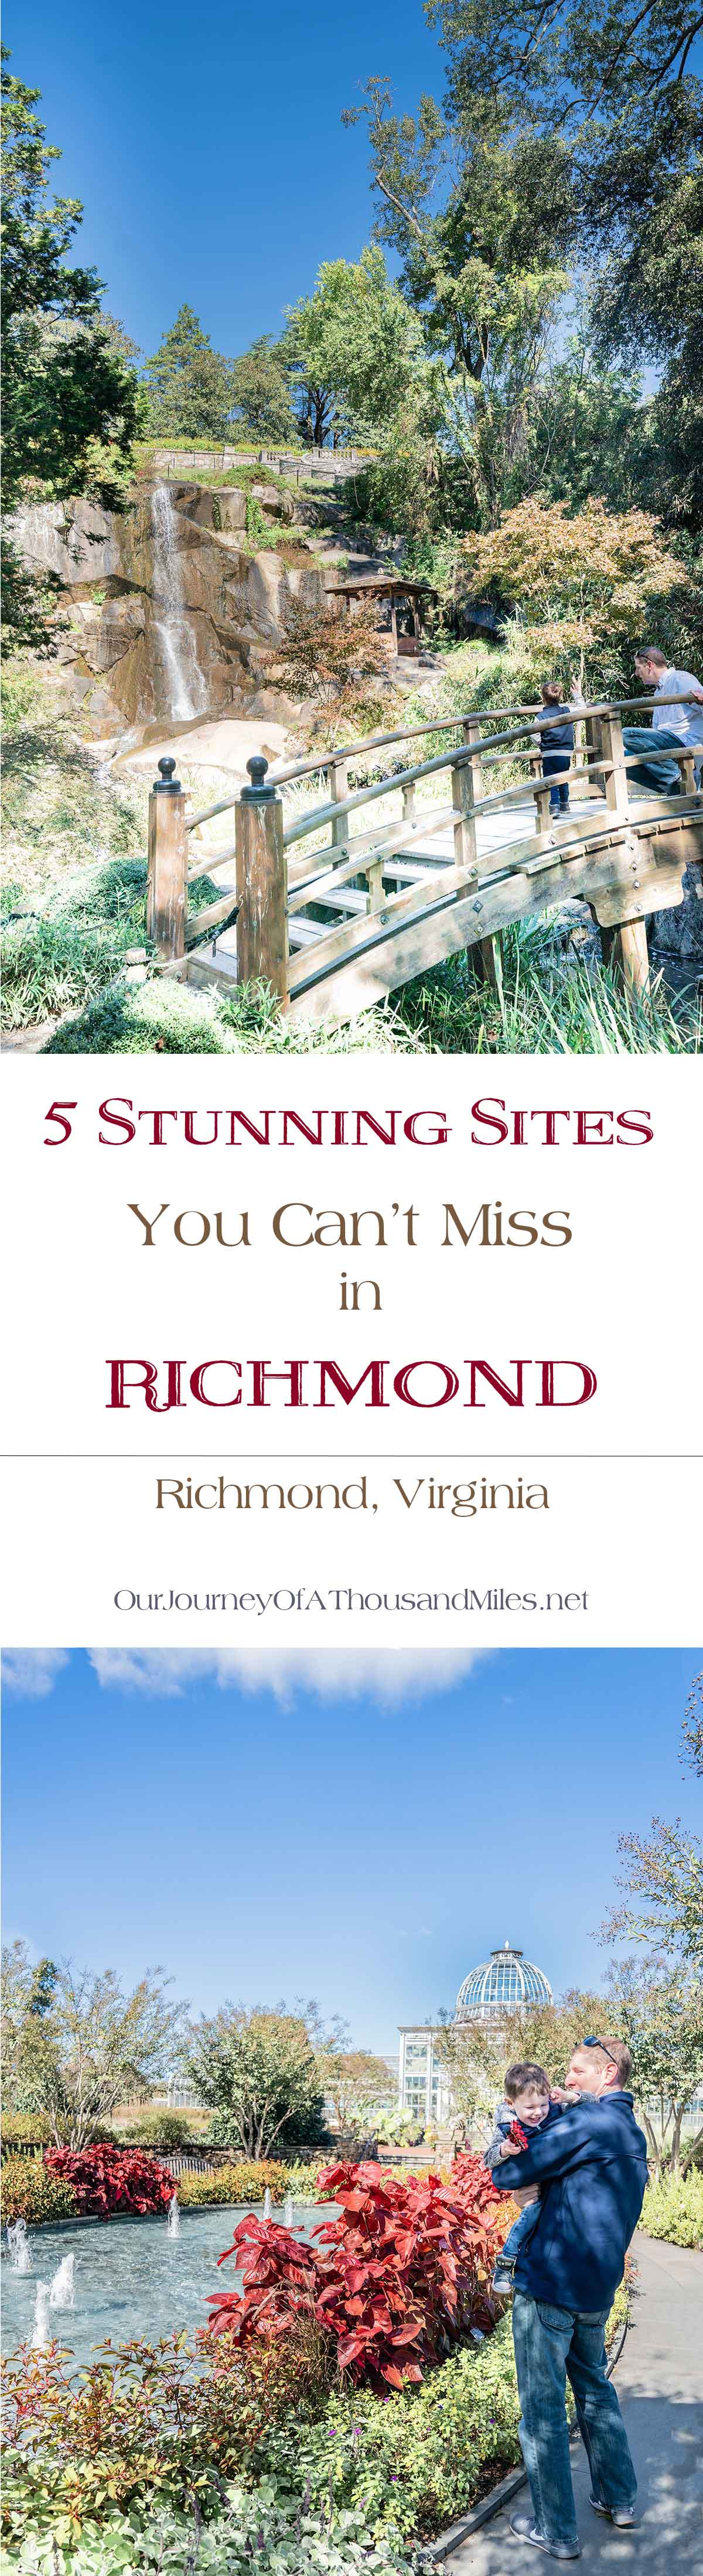 Five-Stunning-Sites-You-Absolutely-Must-See-in-Richmond-Virginia